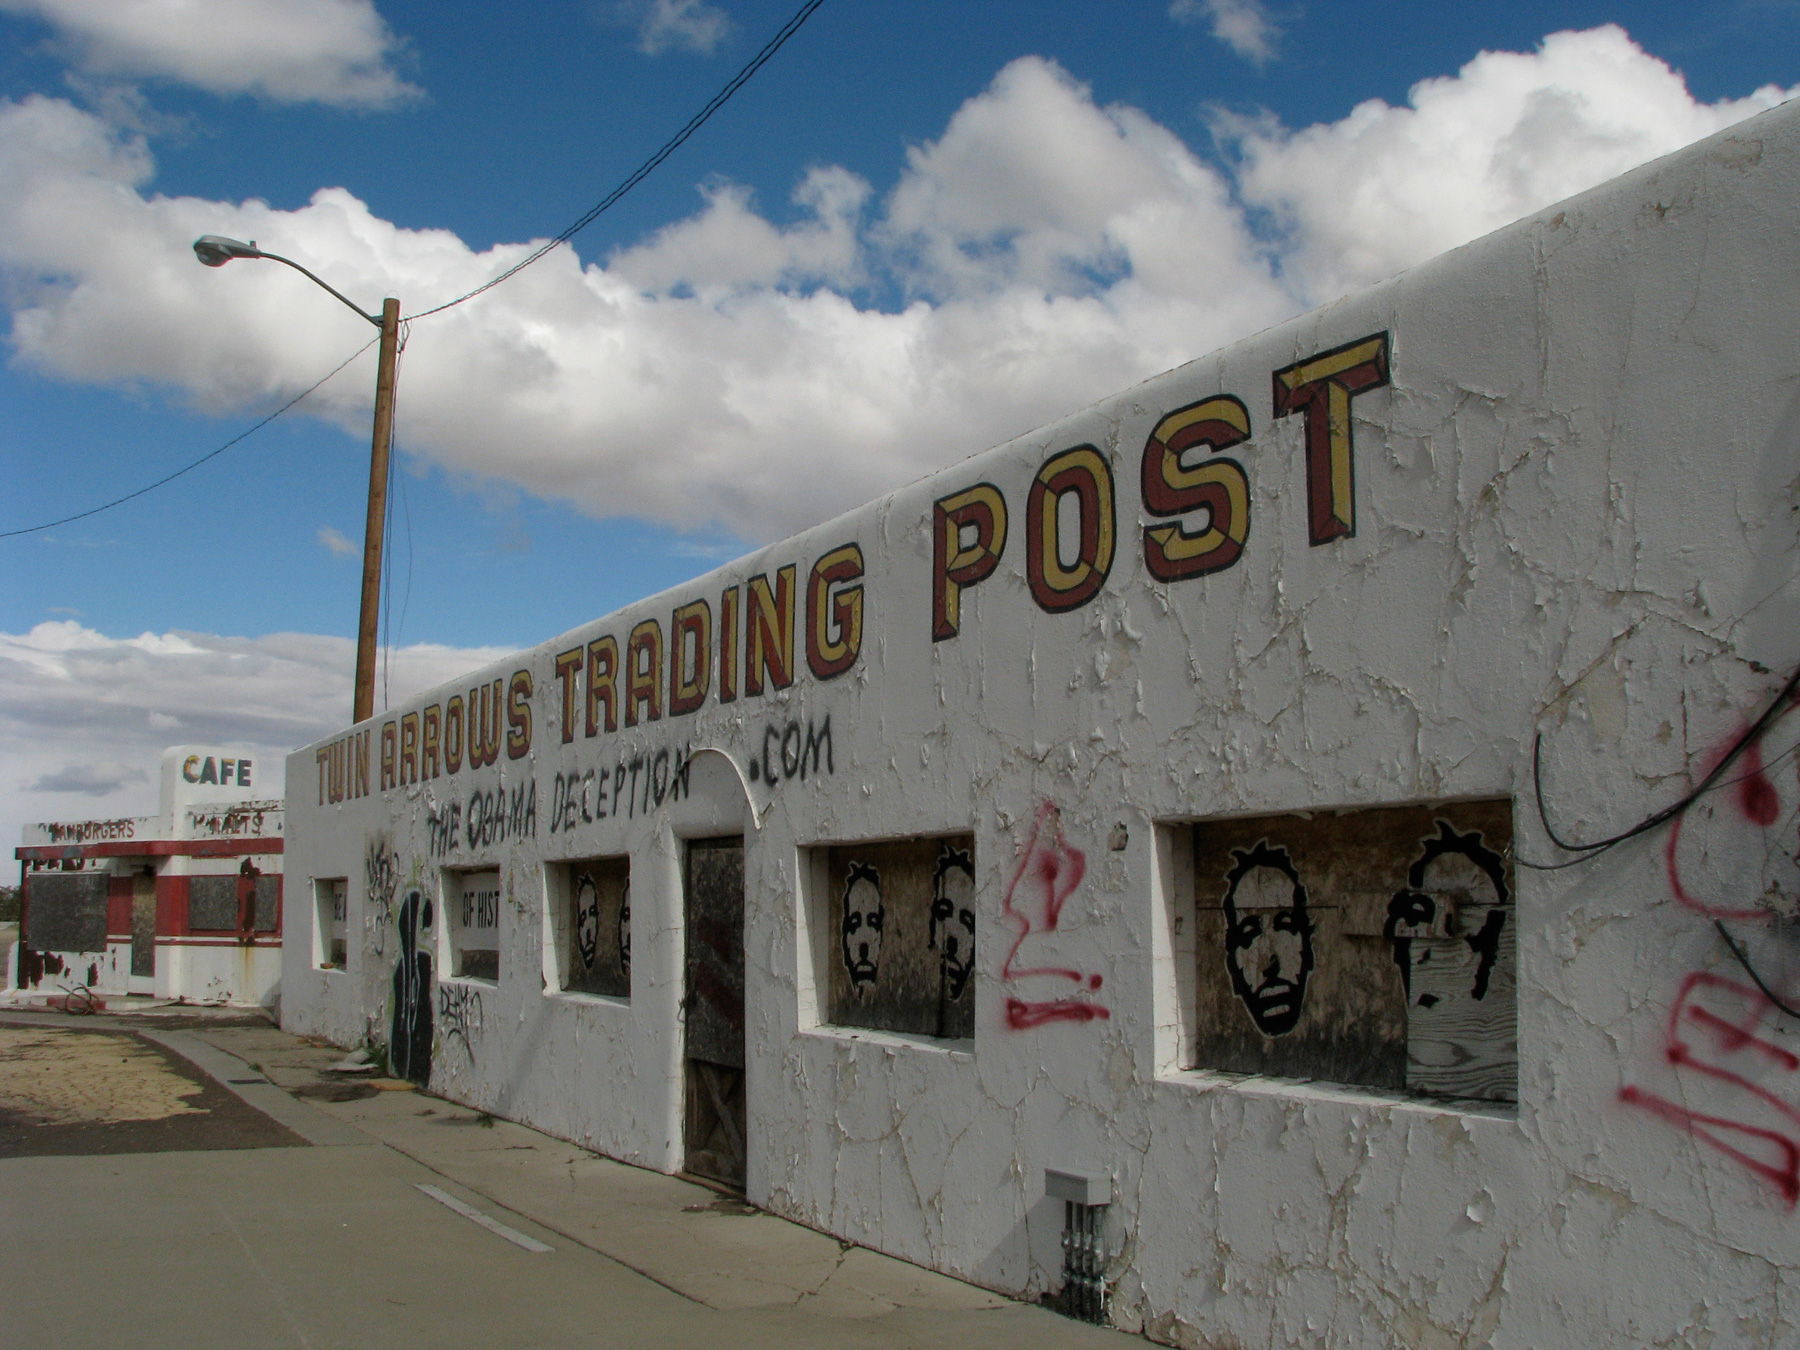 Twin Arrows Trading Post 2010